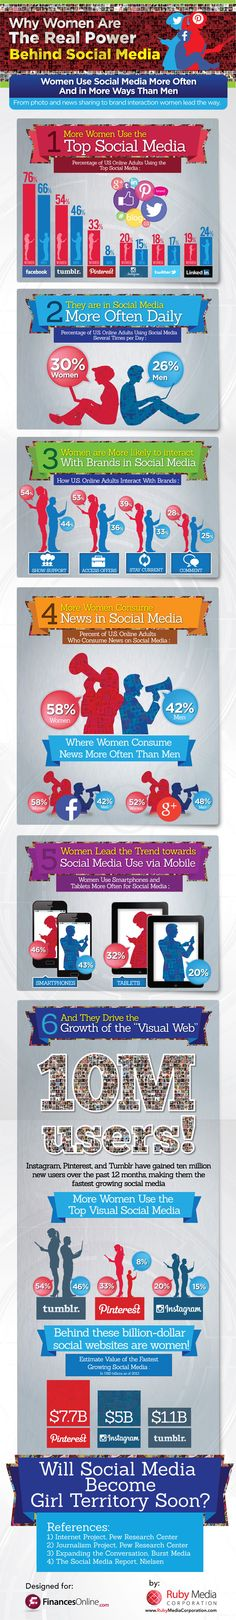 Who Rules who-rules-mobile-social-media-world-men-or-womenwho-rules-mobile-social-media-world-men-or-women